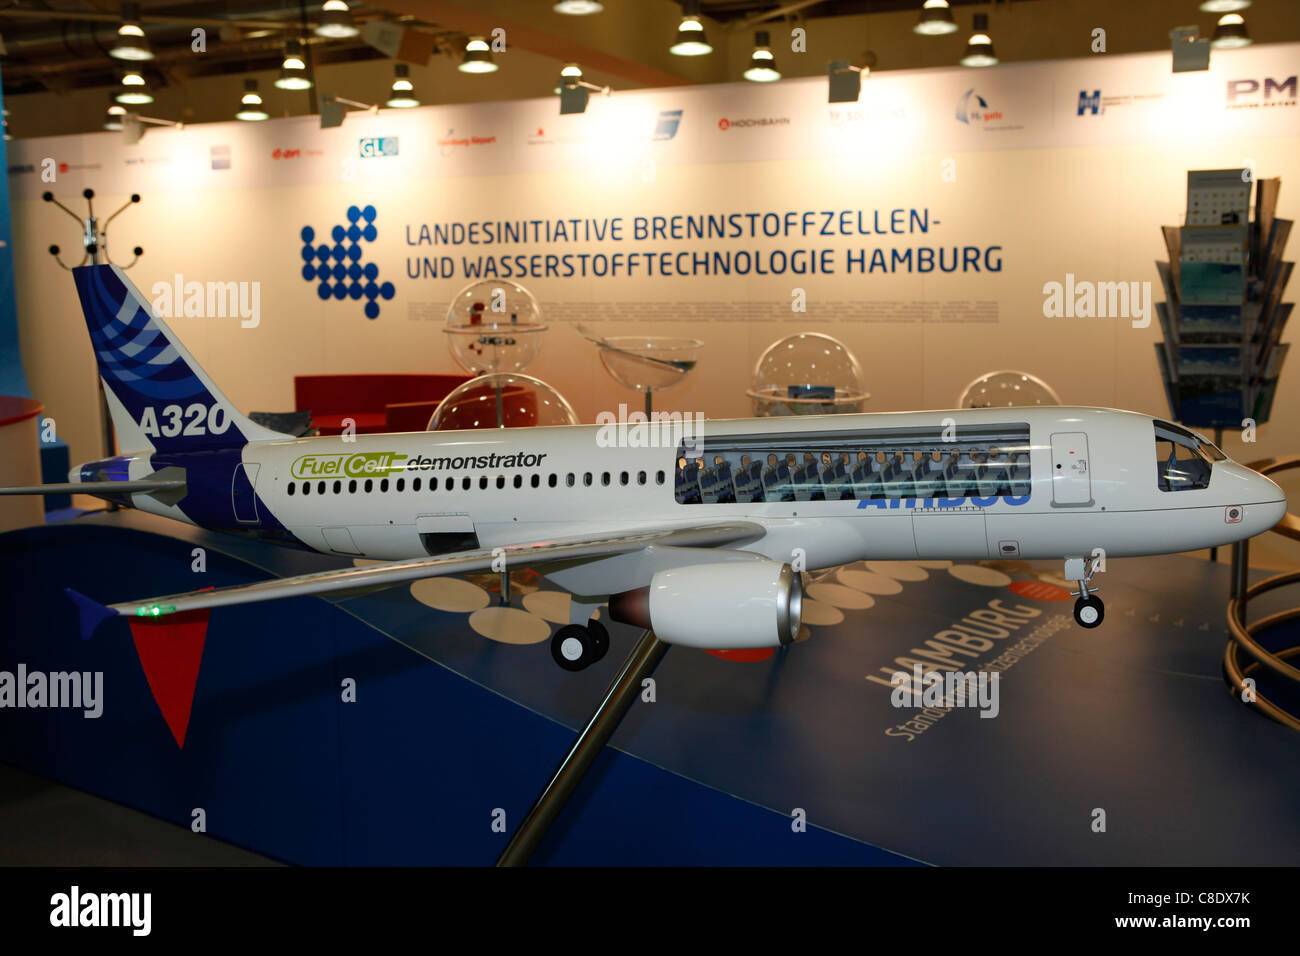 A model of fuel cell usage in an Airbus A320 is presented at Hamburg, Germany. - Stock Image